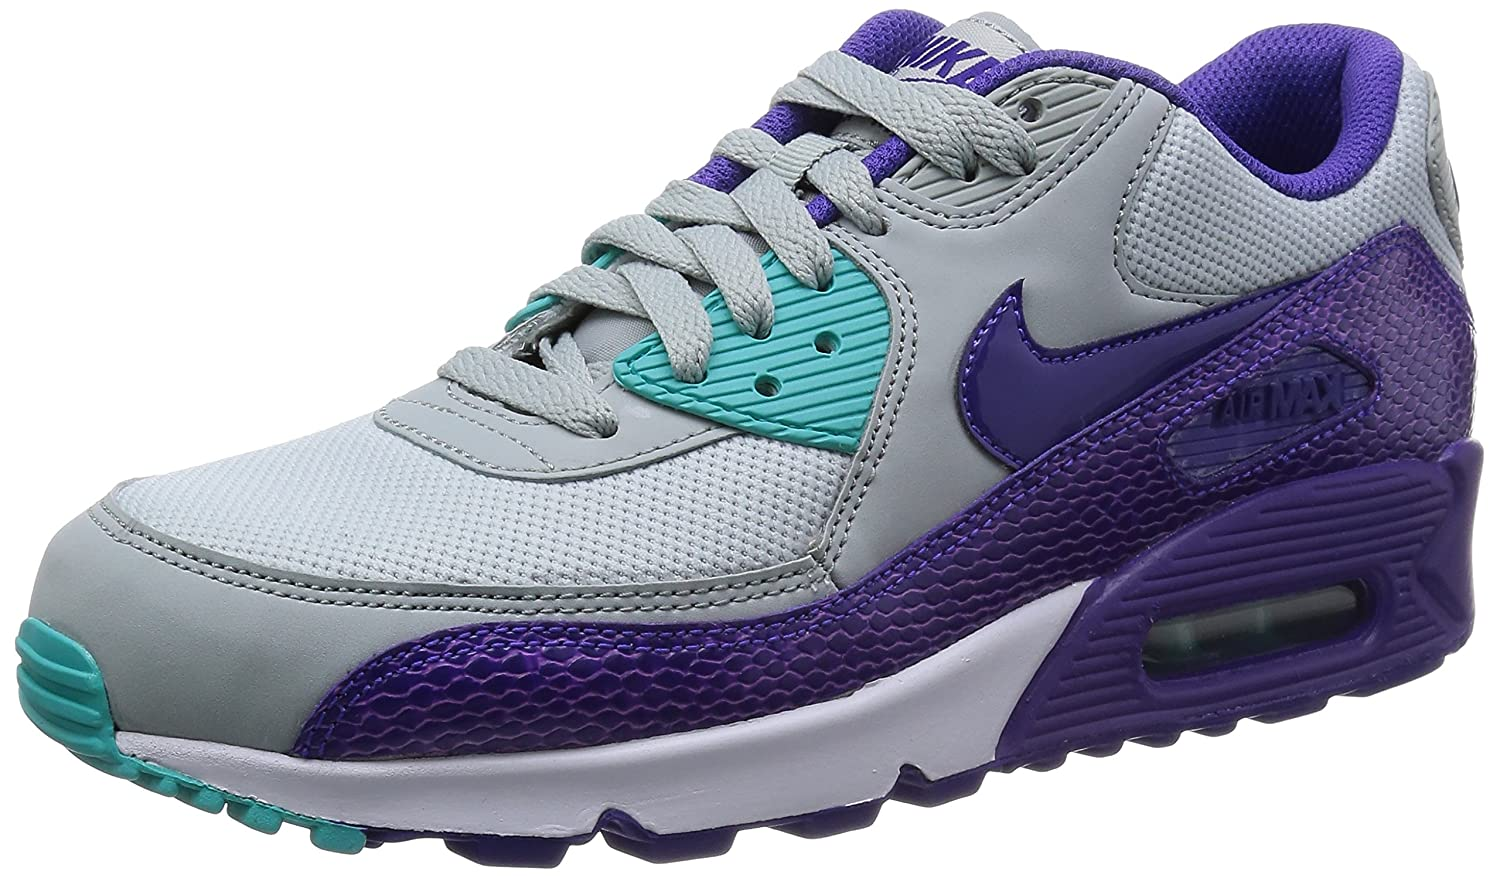 Nike Air Max 90 Womens Running Shoes 325213-036 Silver Wing 7.5 M US